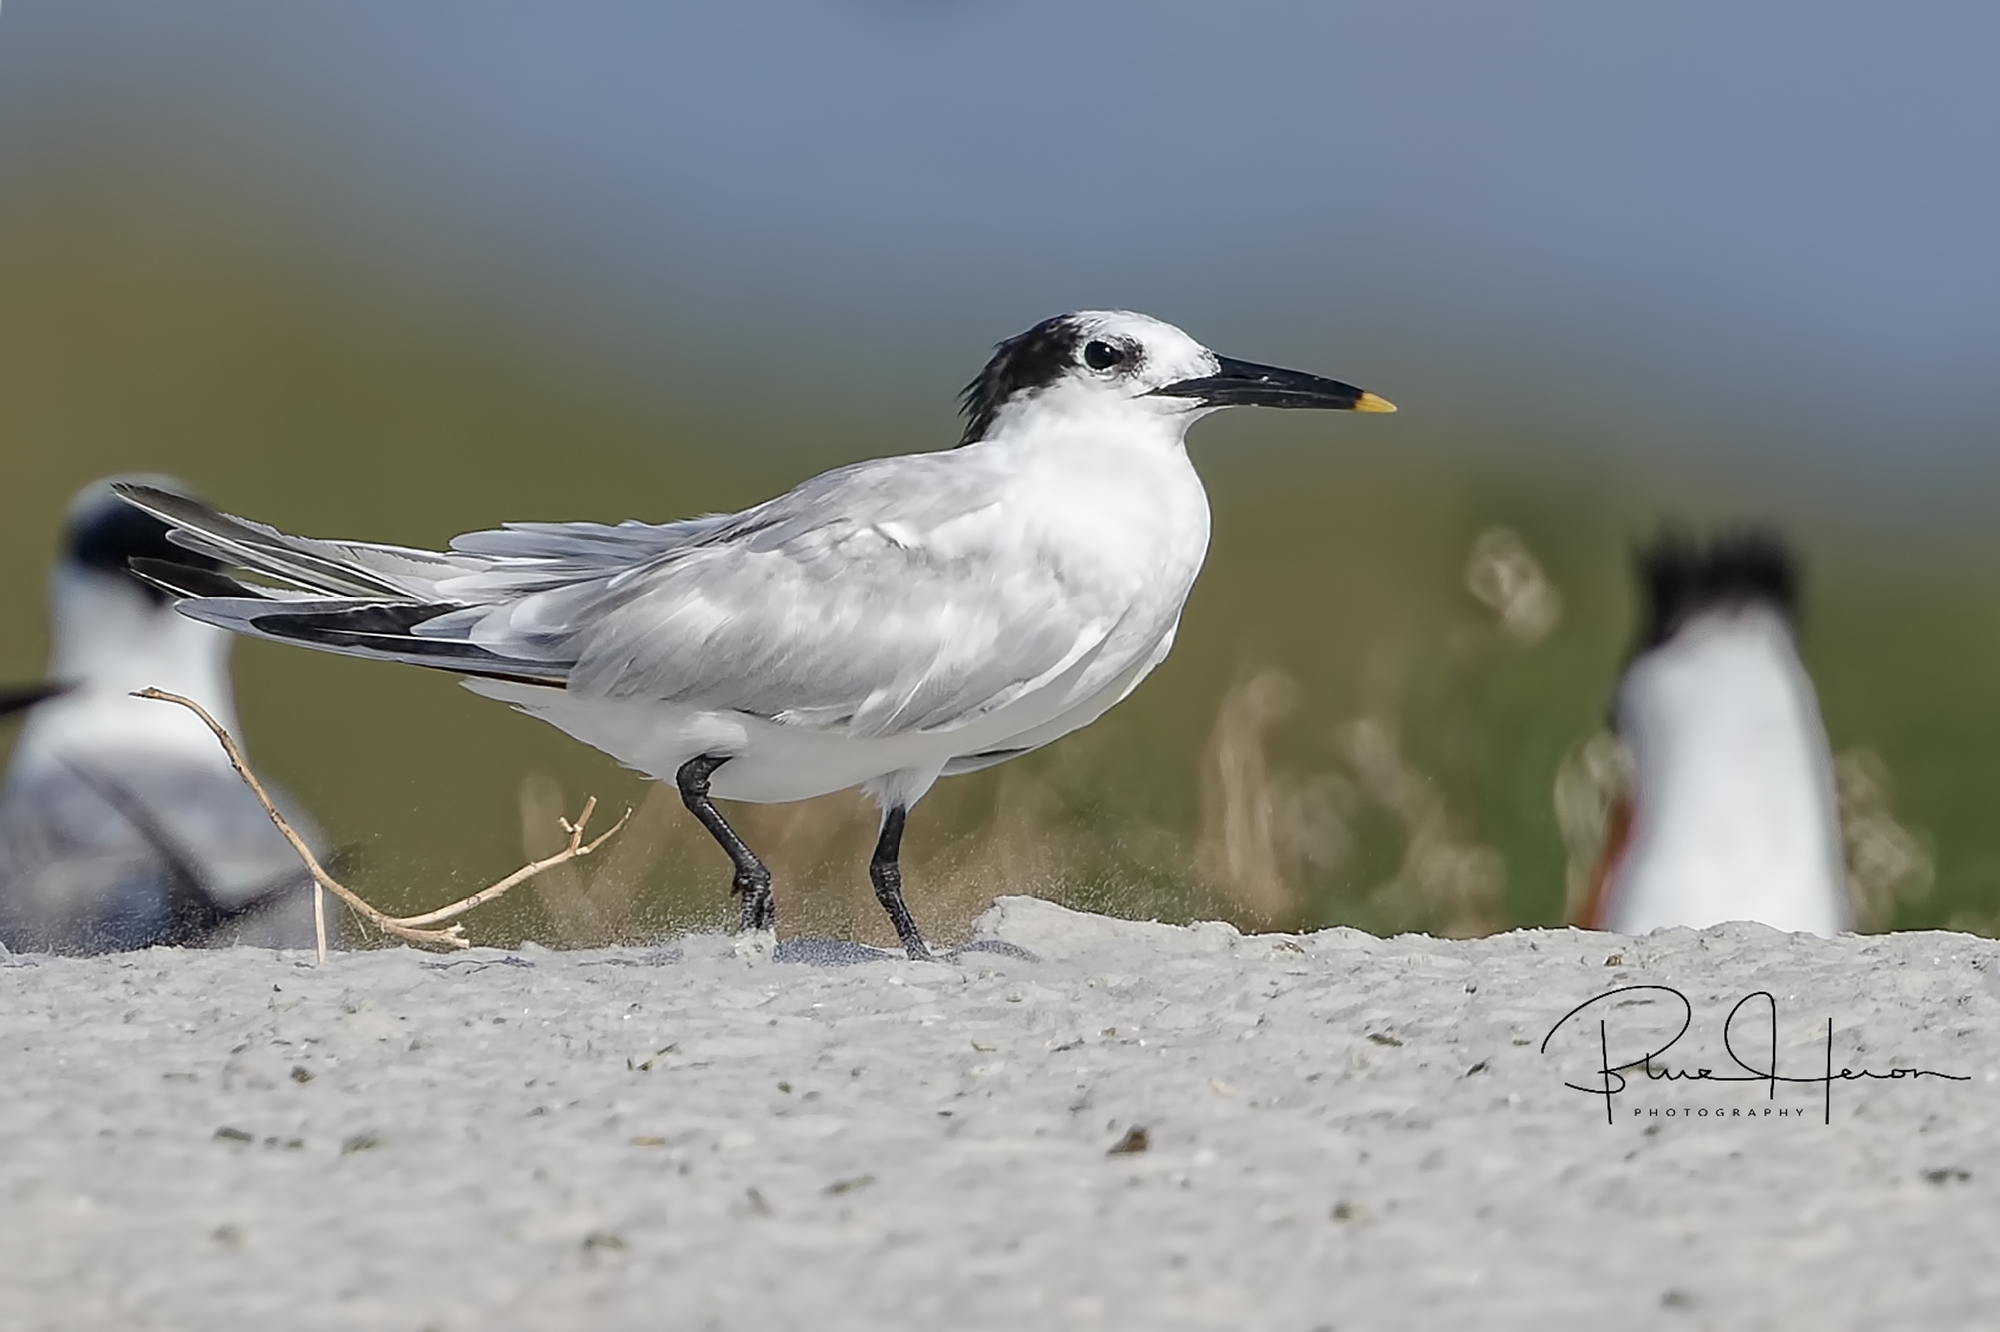 A few Sandwich Terns are also found in the Dunes....If the beak looks dipped in mustard, it is a Sandwich Tern..